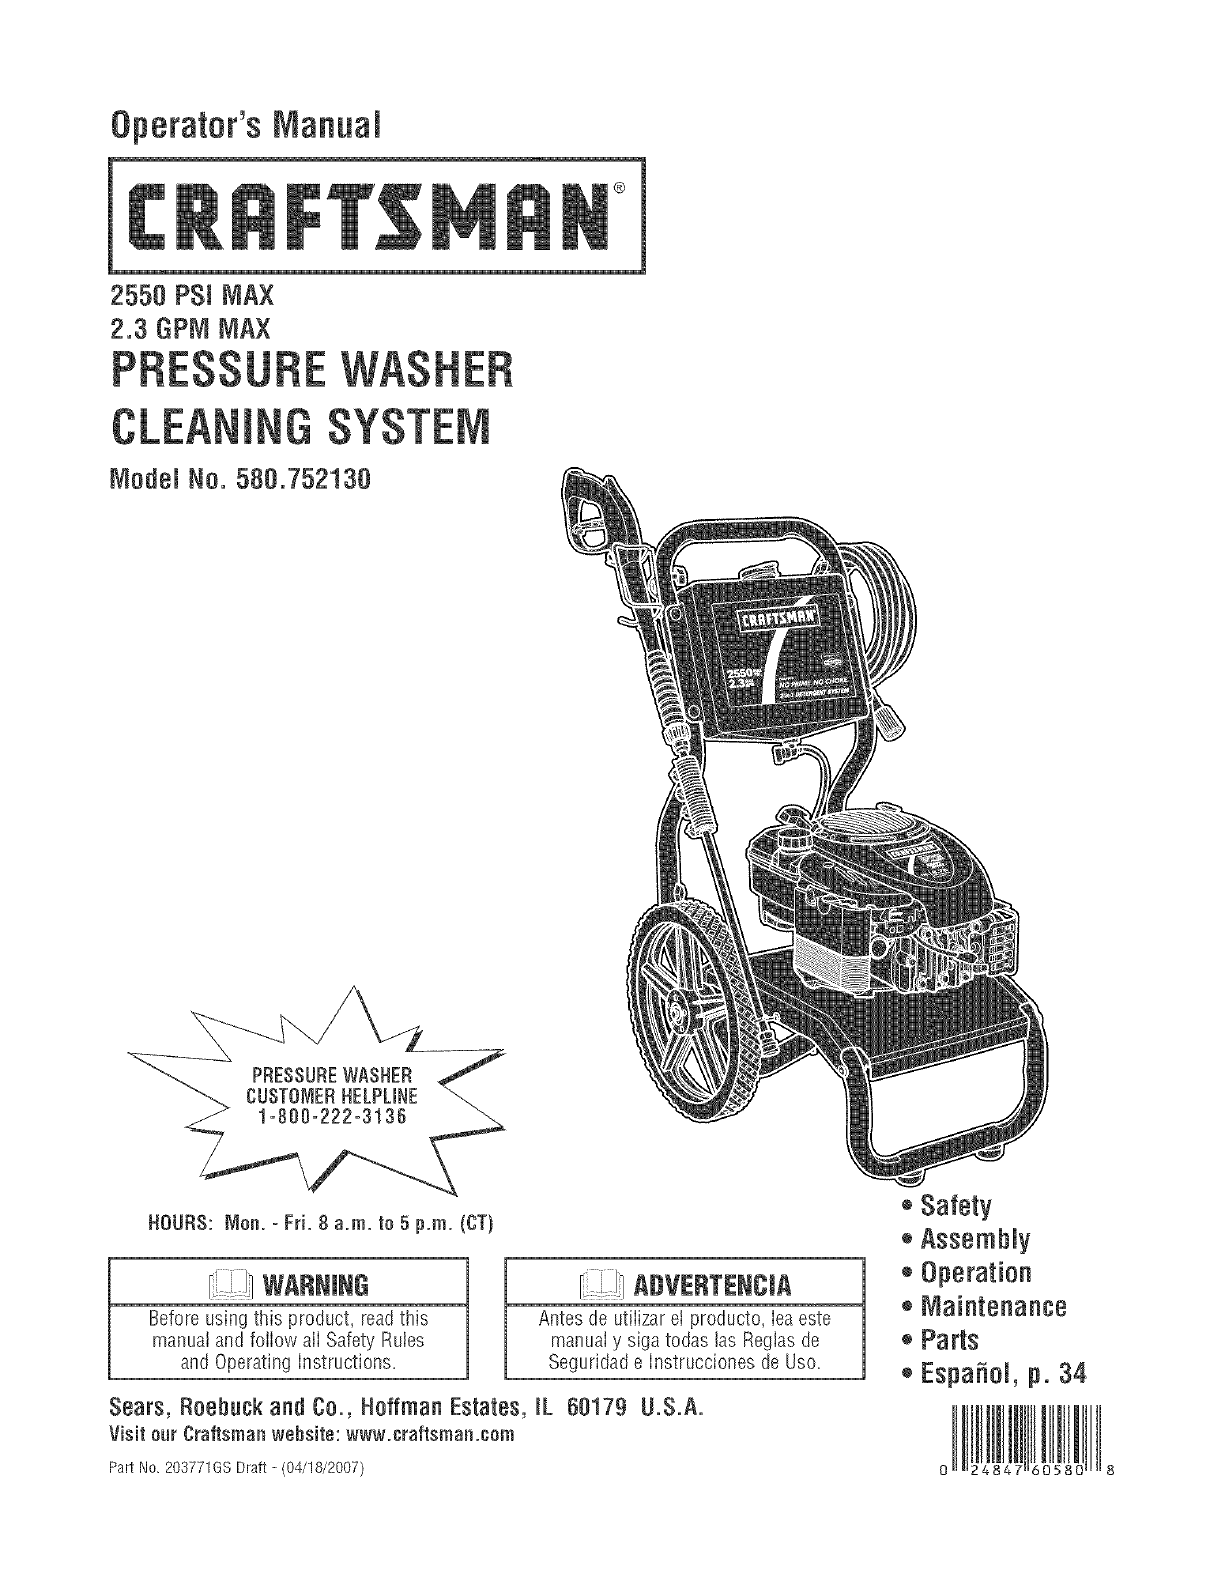 Steam Pressure Washer Manual Guide